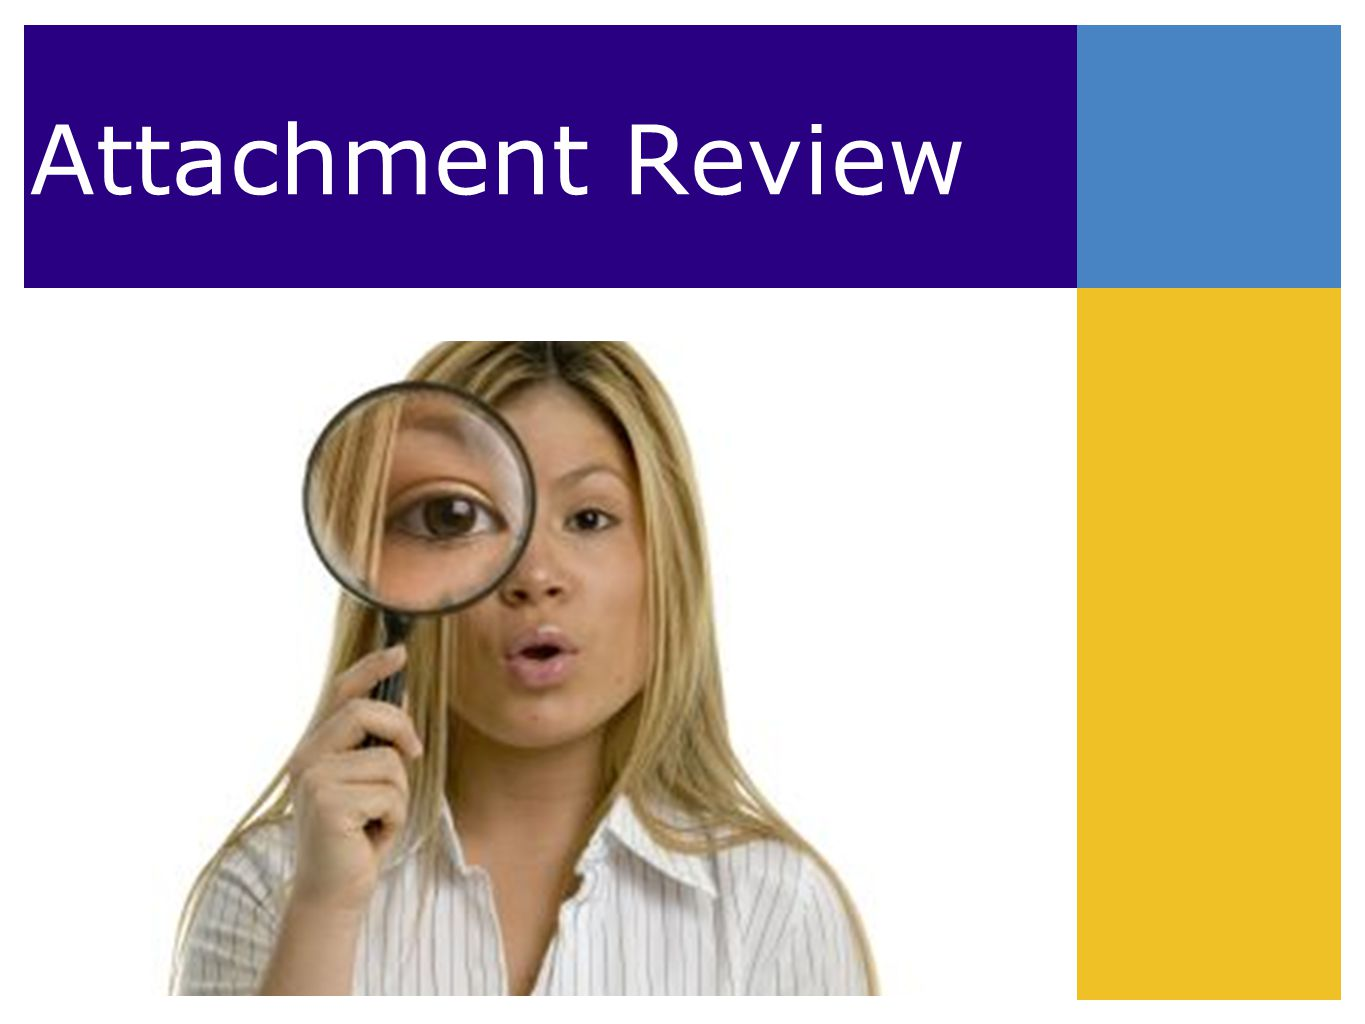 Attachment Review